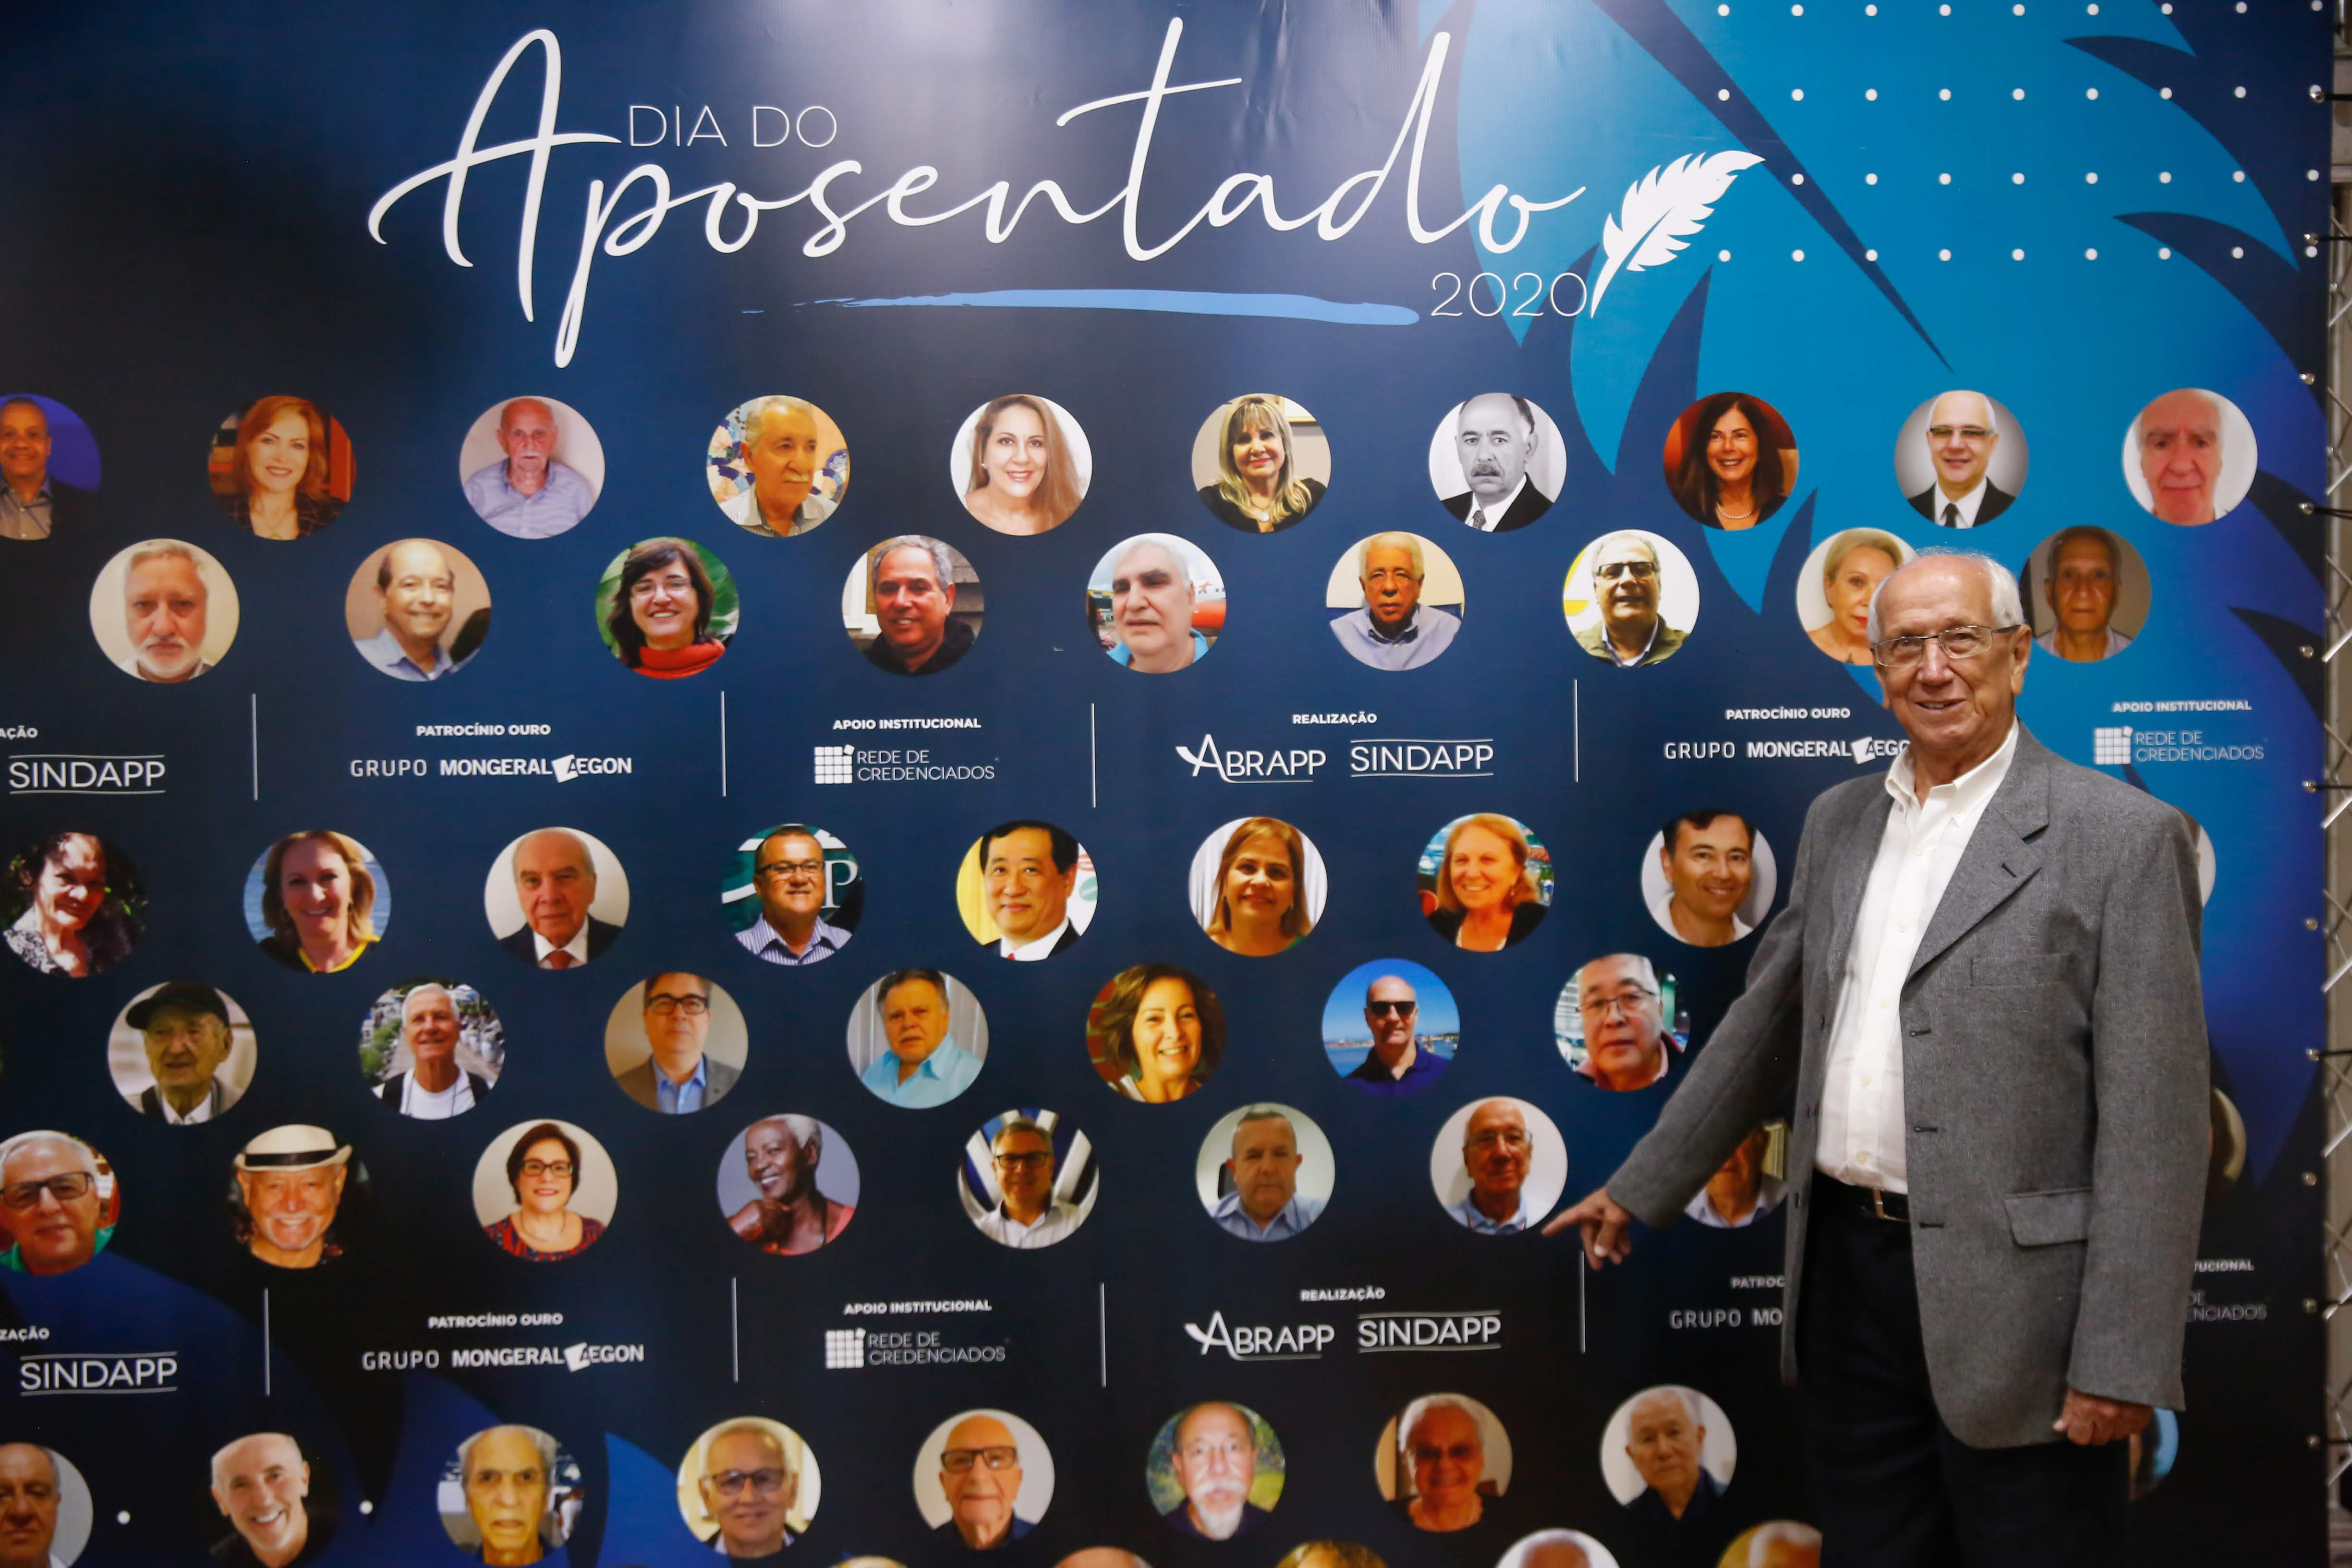 Dia do Aposentado 2020 - A Braslight participou do evento...